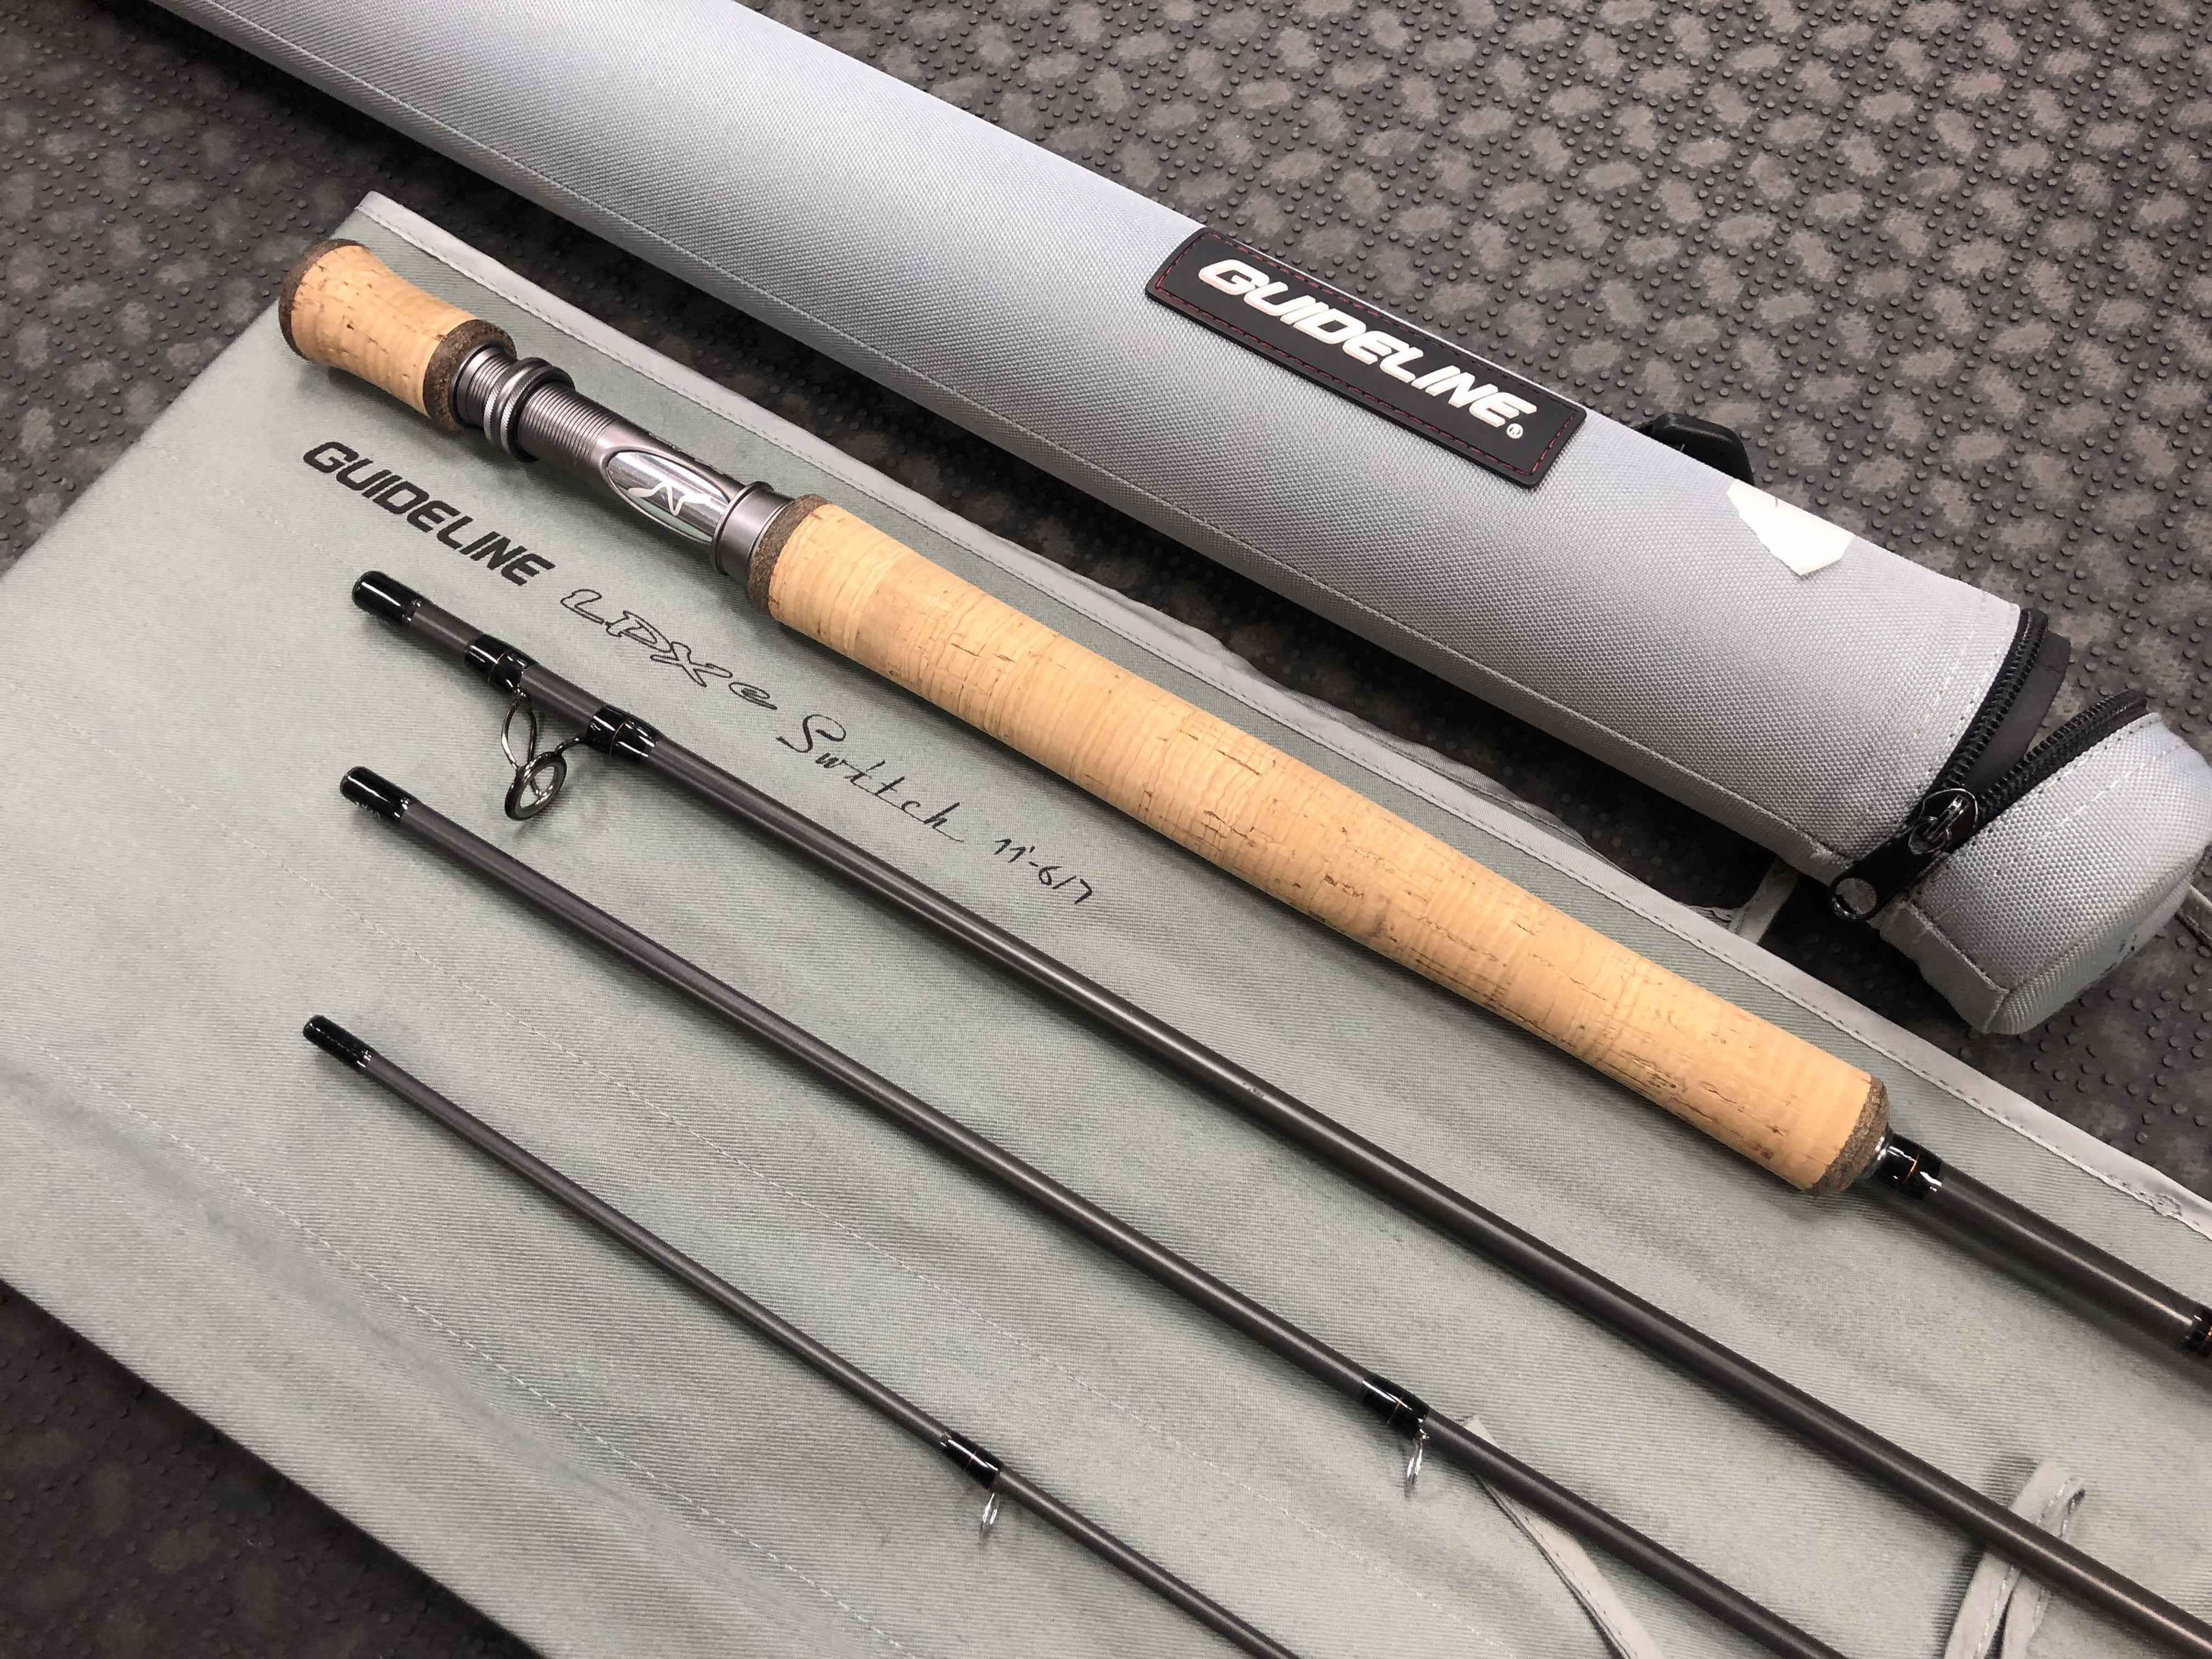 Guideline LPXe Switch Rod - 11' 6/7 Wt 4Pc - LIKE NEW! - $300